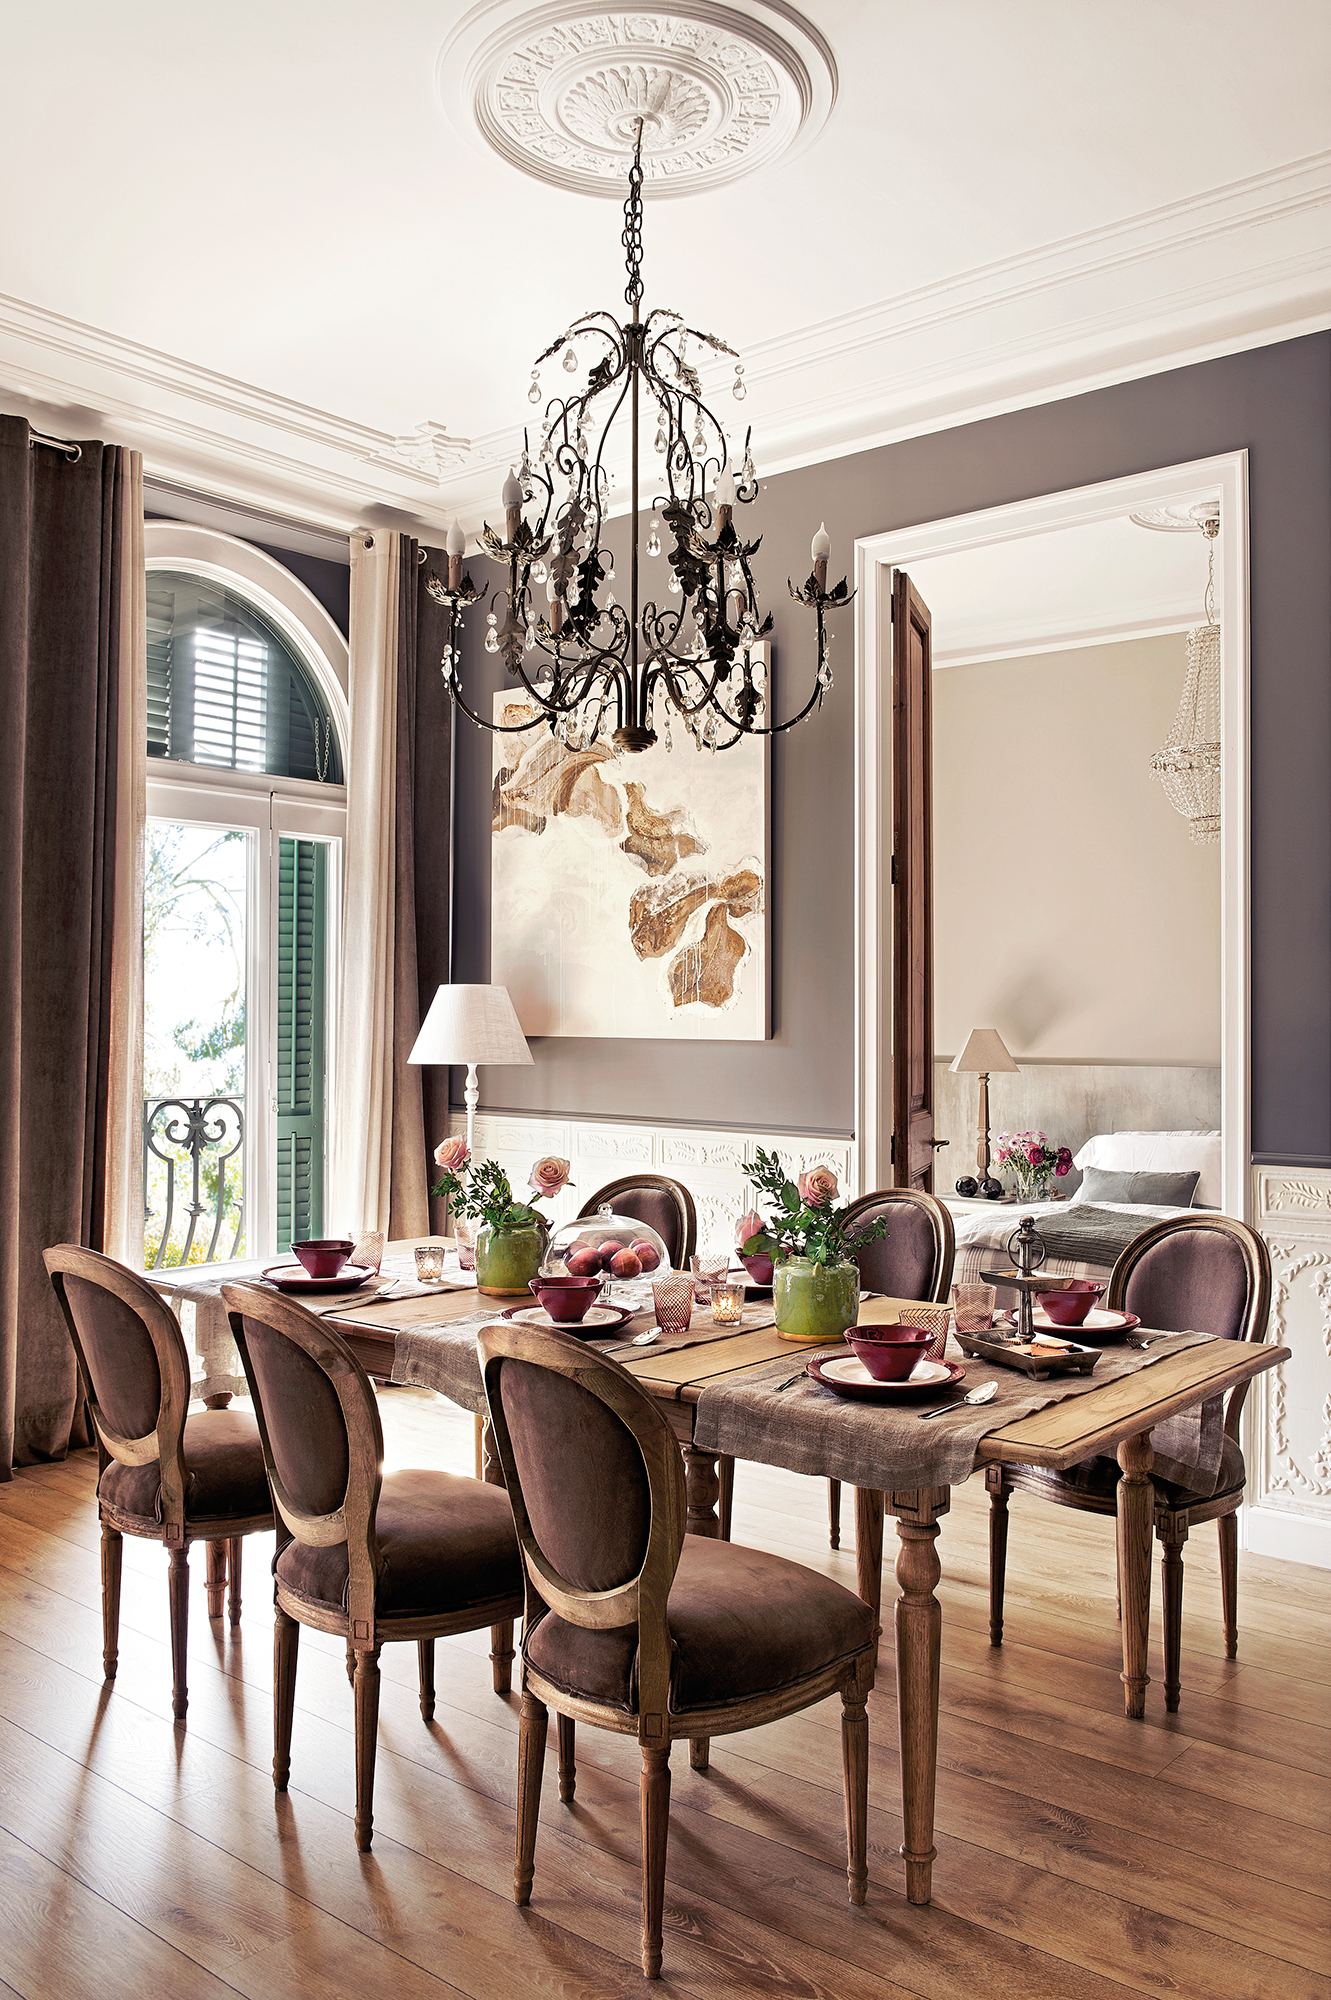 Comedor 15 Ideas Para Decorar Sus Paredes ~ Decoracion De Paredes Interiores